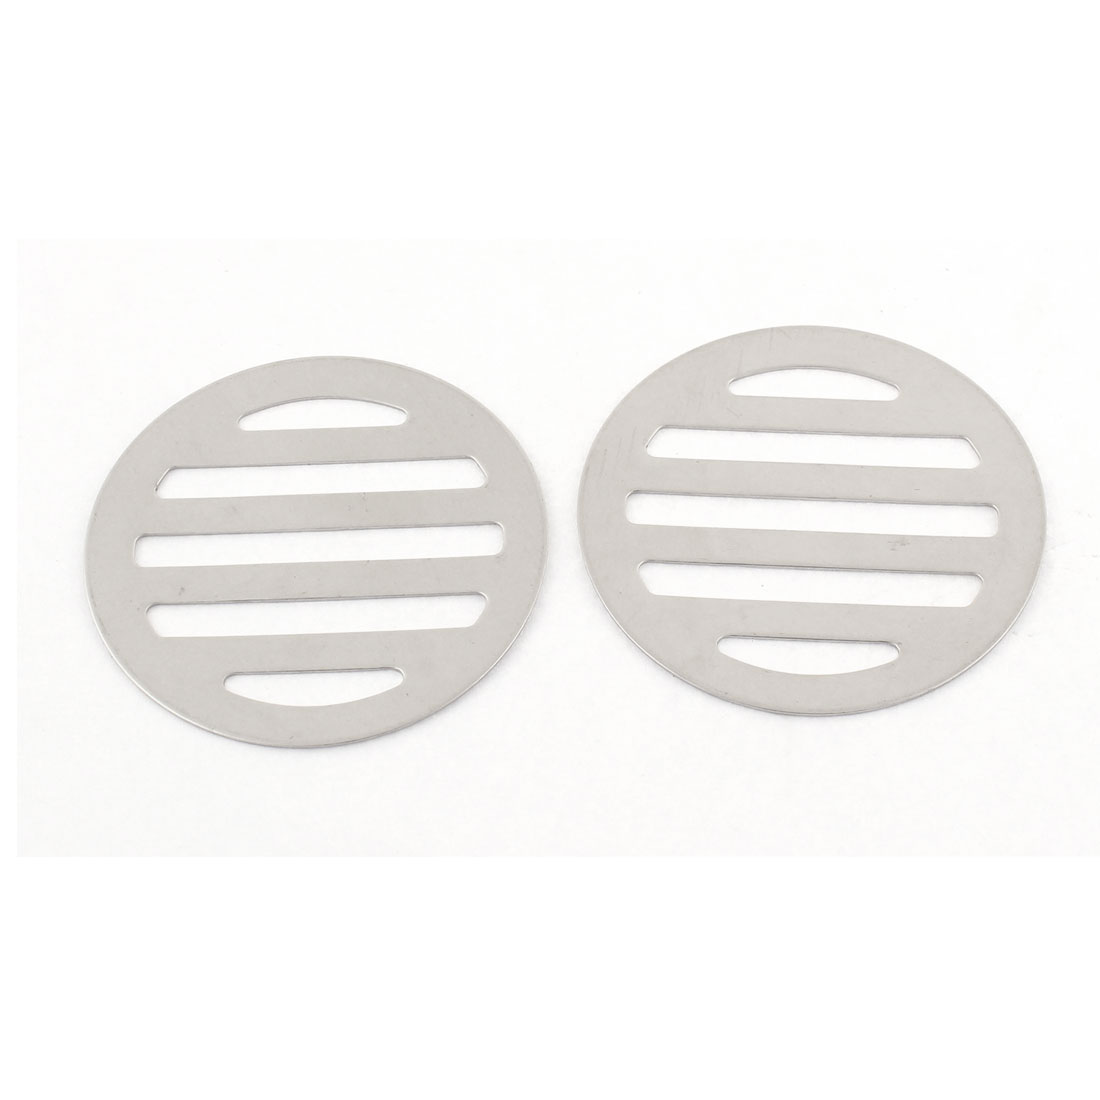 "Kitchen Bathroom Round Floor Drain Drainer Cover 2.5"" 6.3cm Dia 2Pcs"